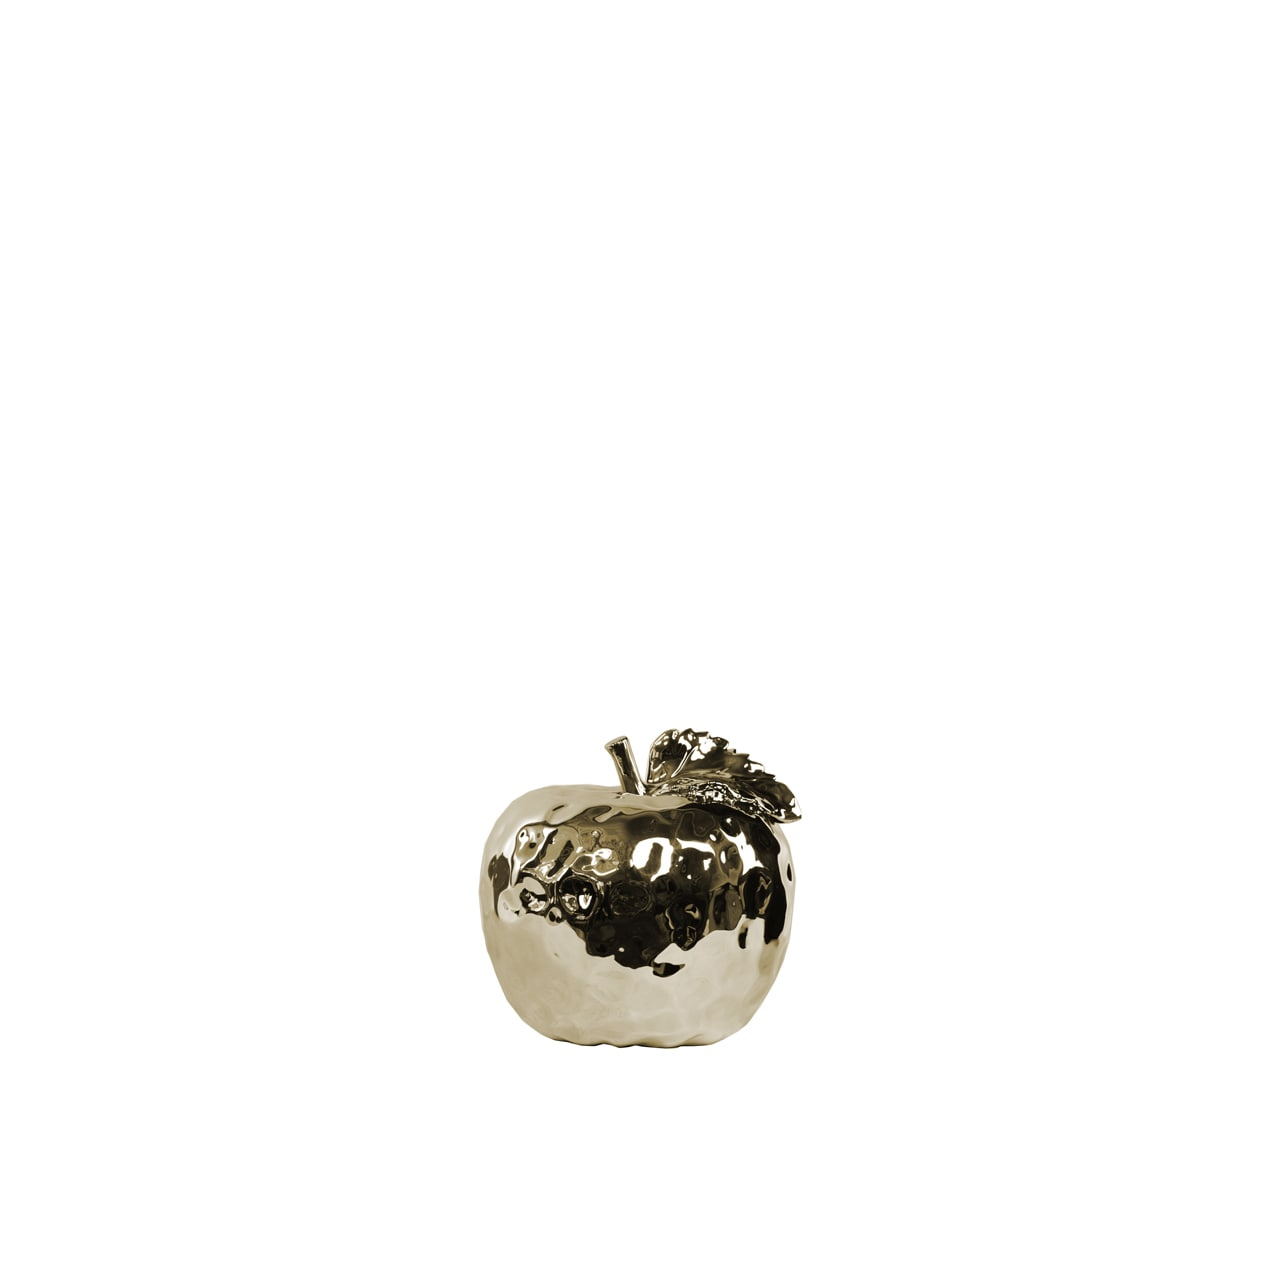 Ceramic Small Dimpled Polished Champagne Apple Figurine with Stem and Leaf (Champagne; 4.50x4.50x4.25H)